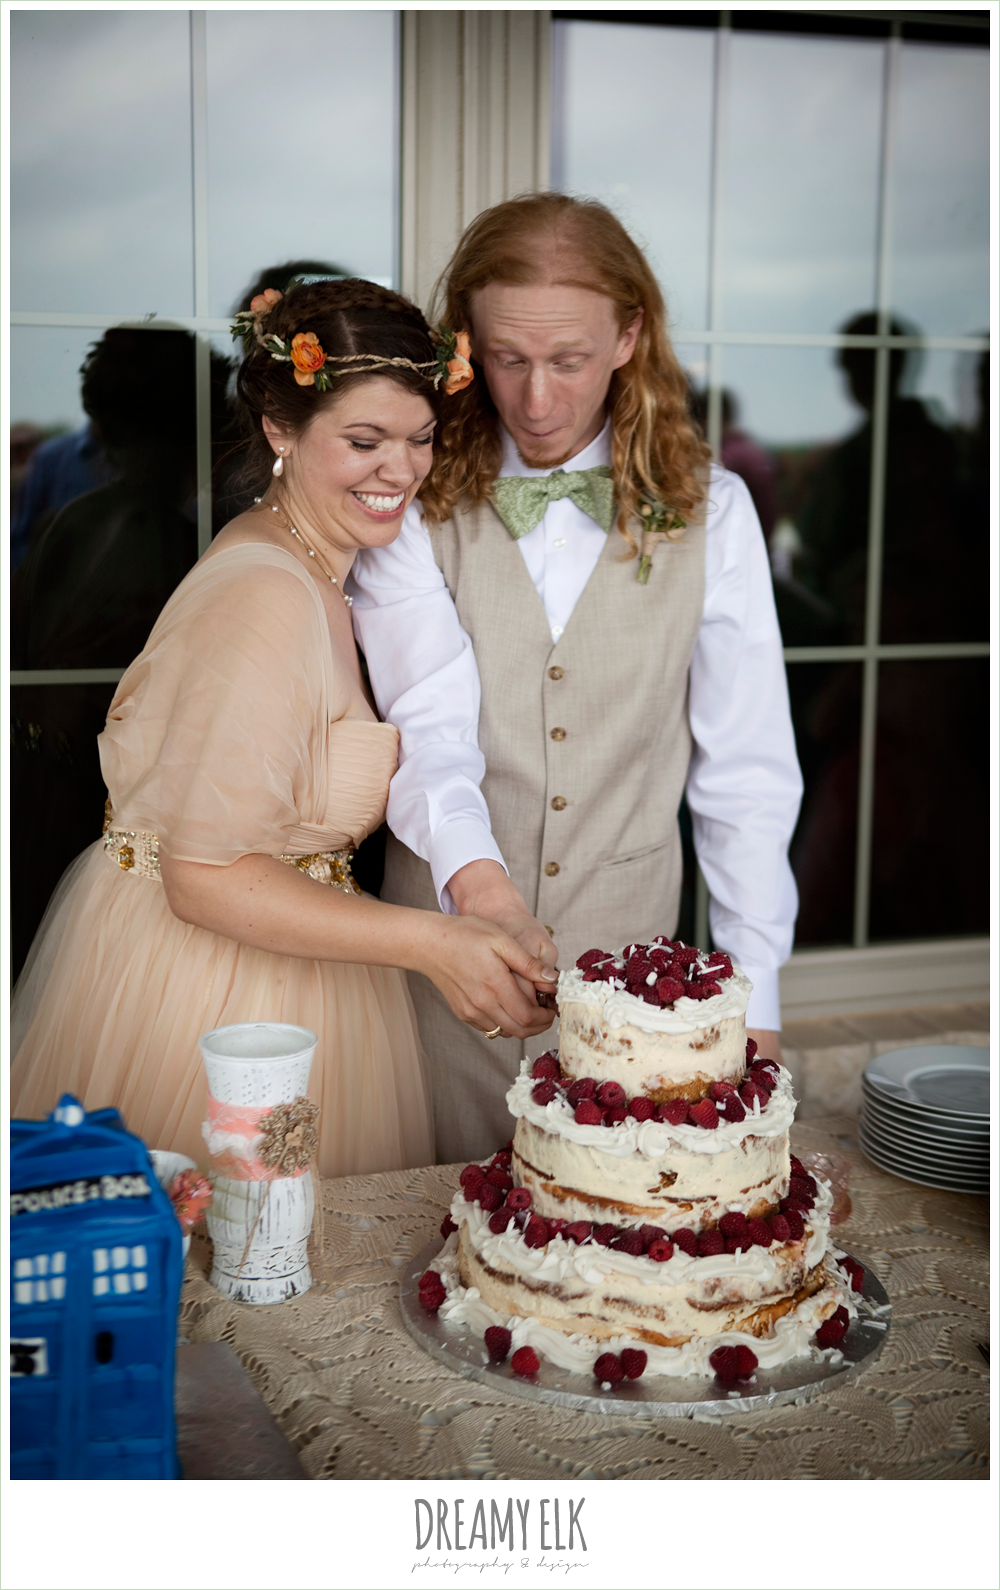 bride and groom cutting cake, raspberry cheesecake